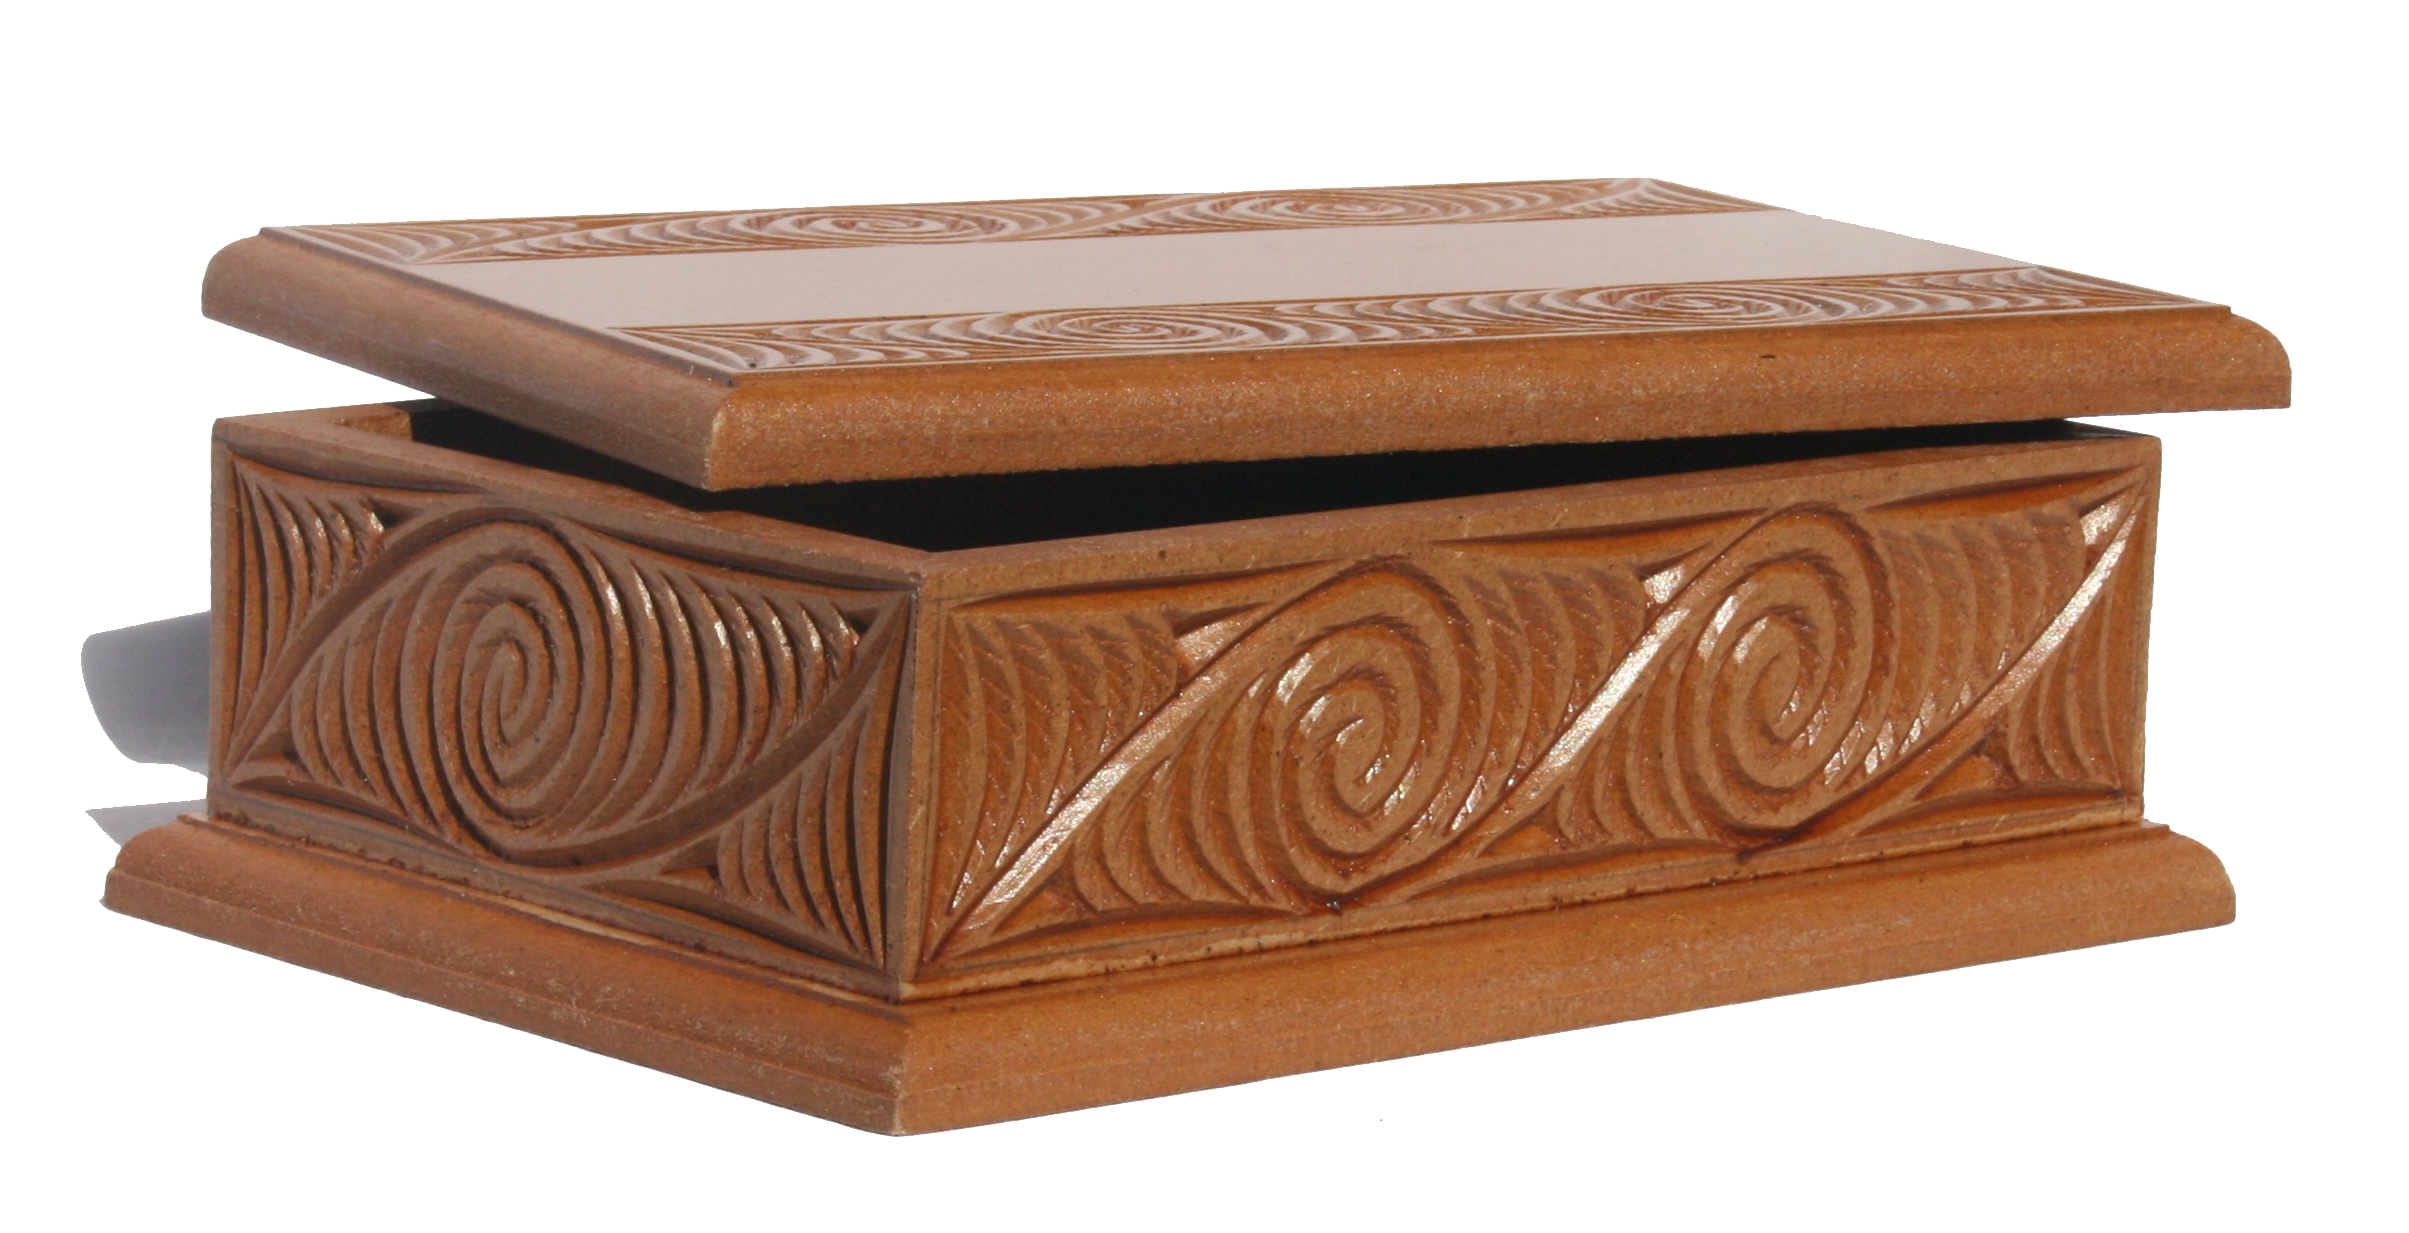 Medium carved box